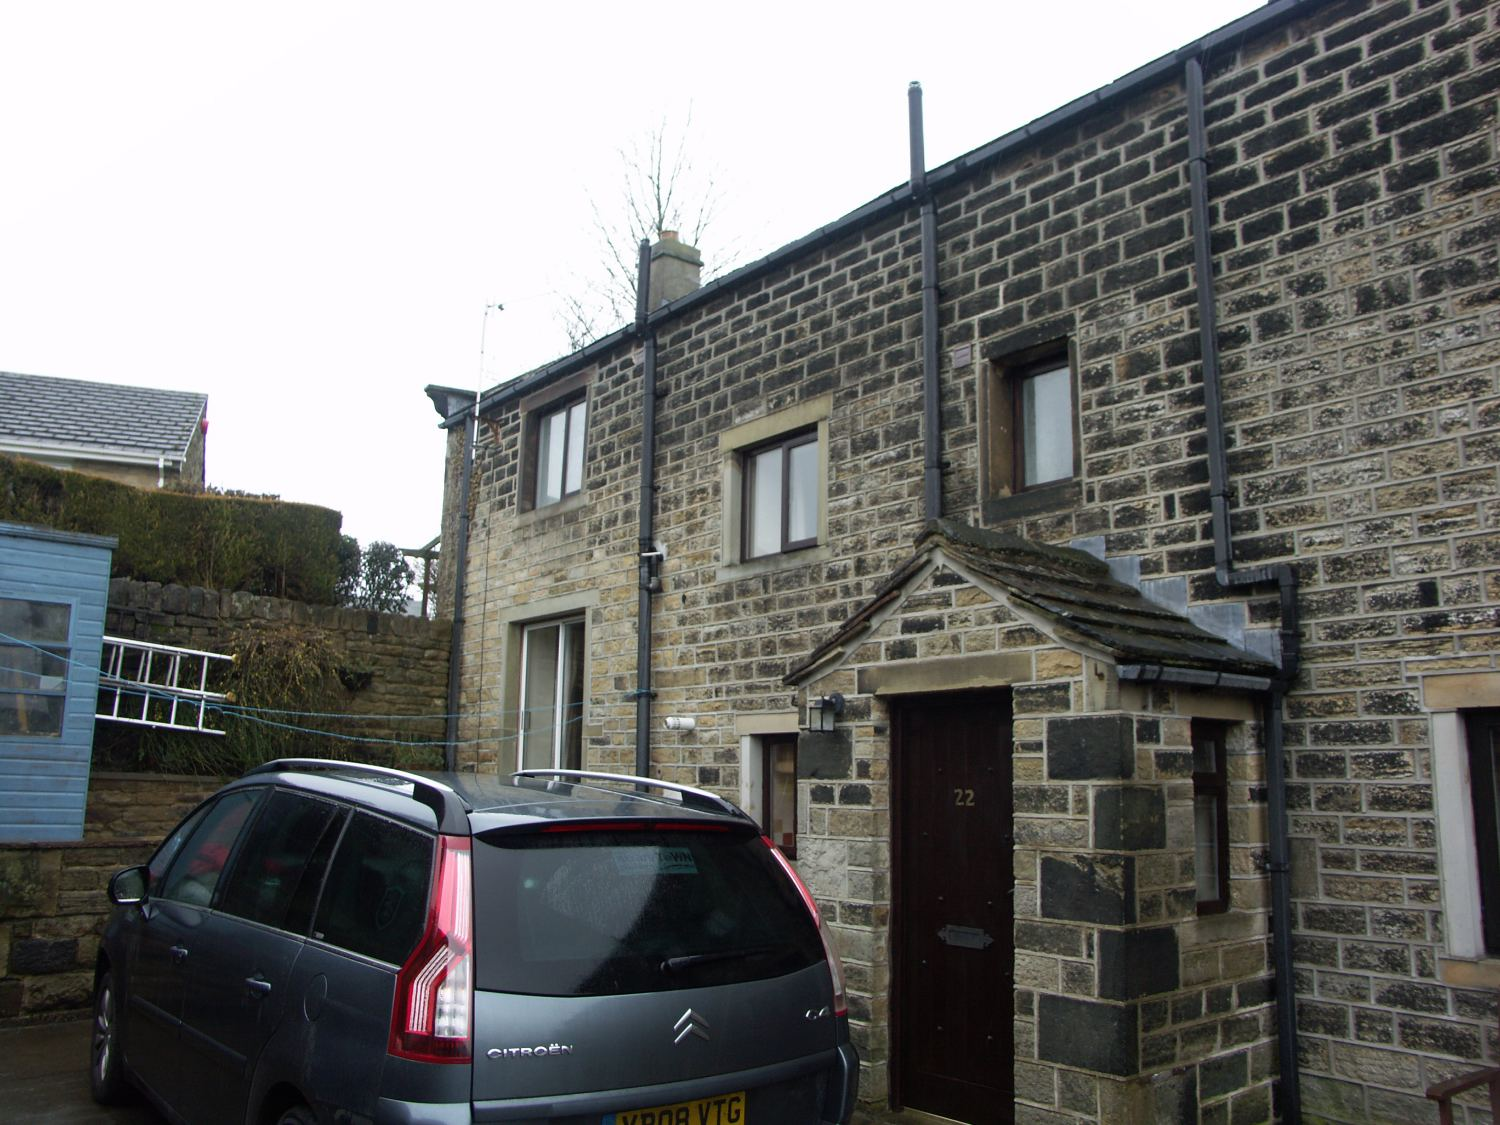 22 St Georges Road, Scholes, Holmfirth, HD9 1UQ